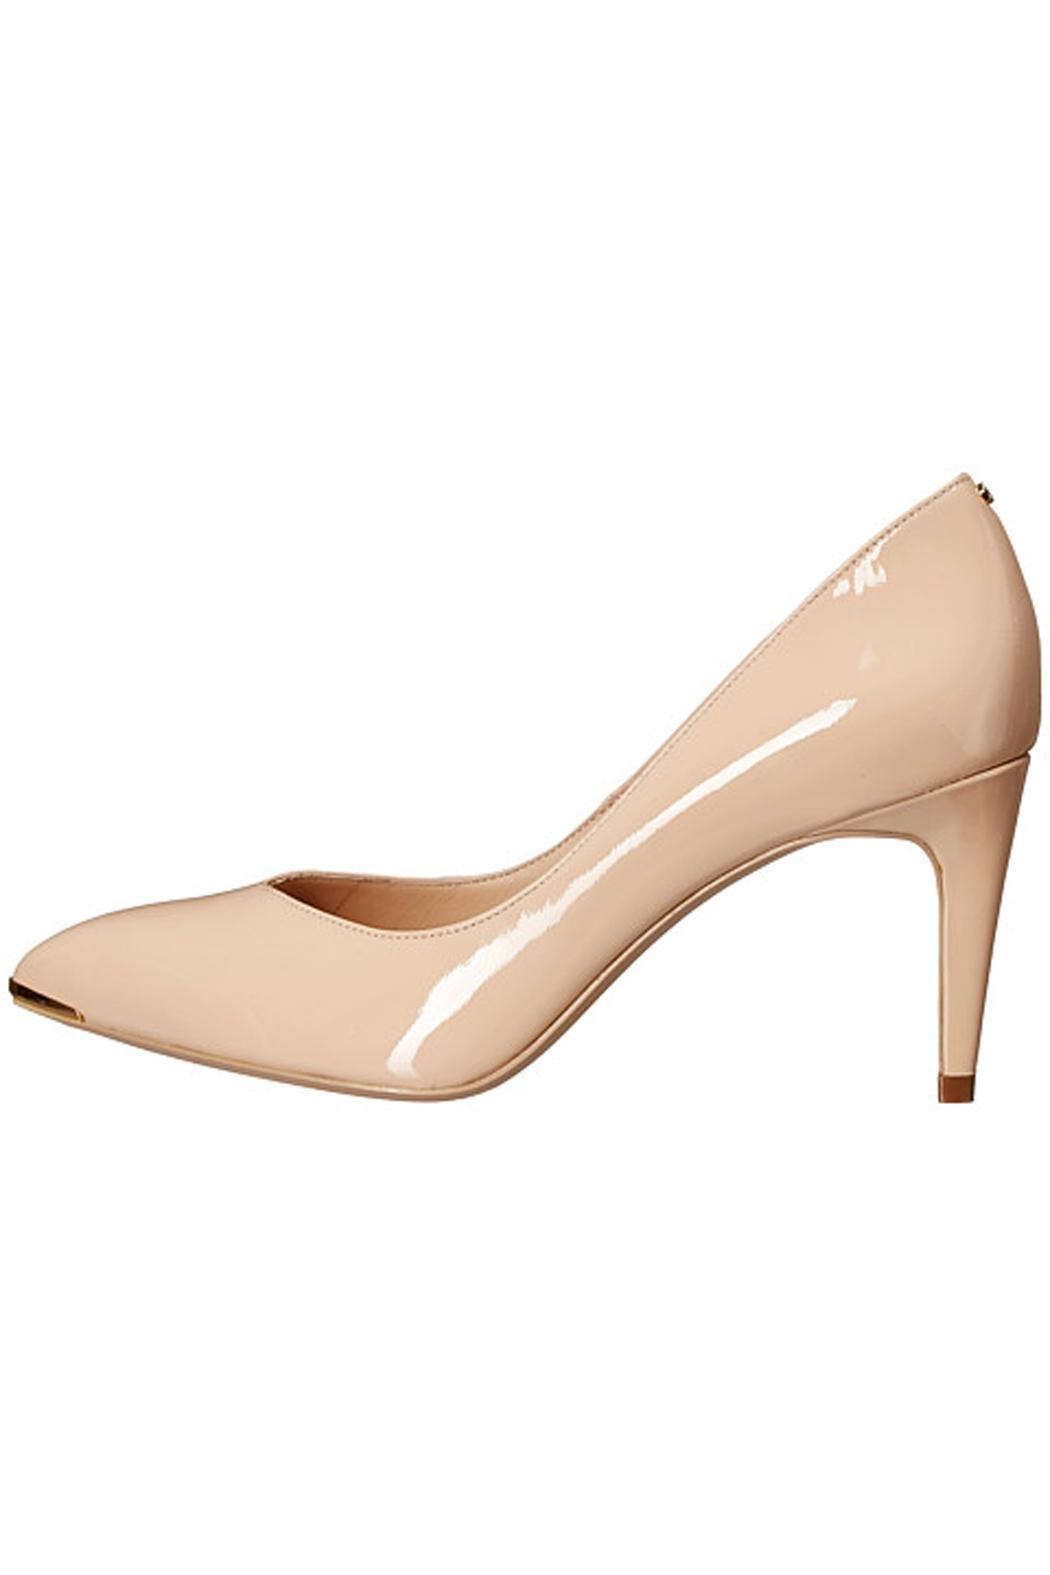 Ted Baker London Moniirra Patent Leather Pump - Main Image